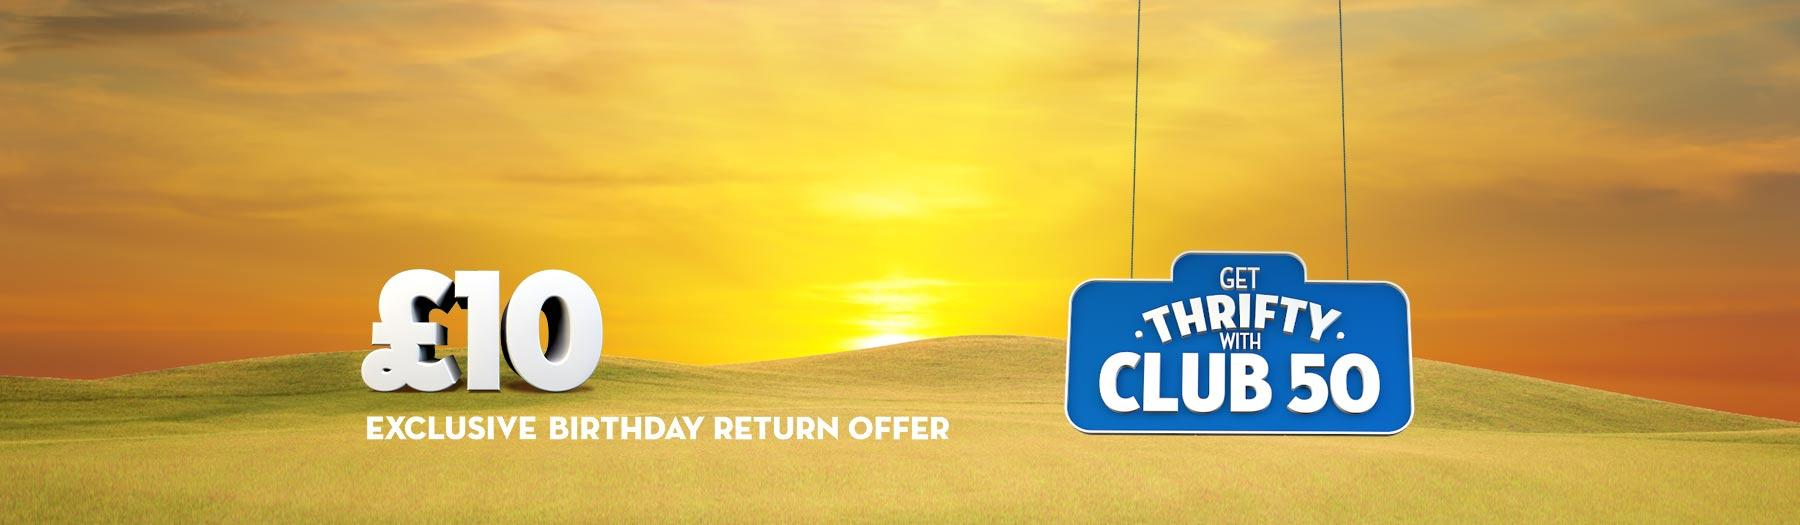 Travel throughout Scotland for £10 return with Club 50